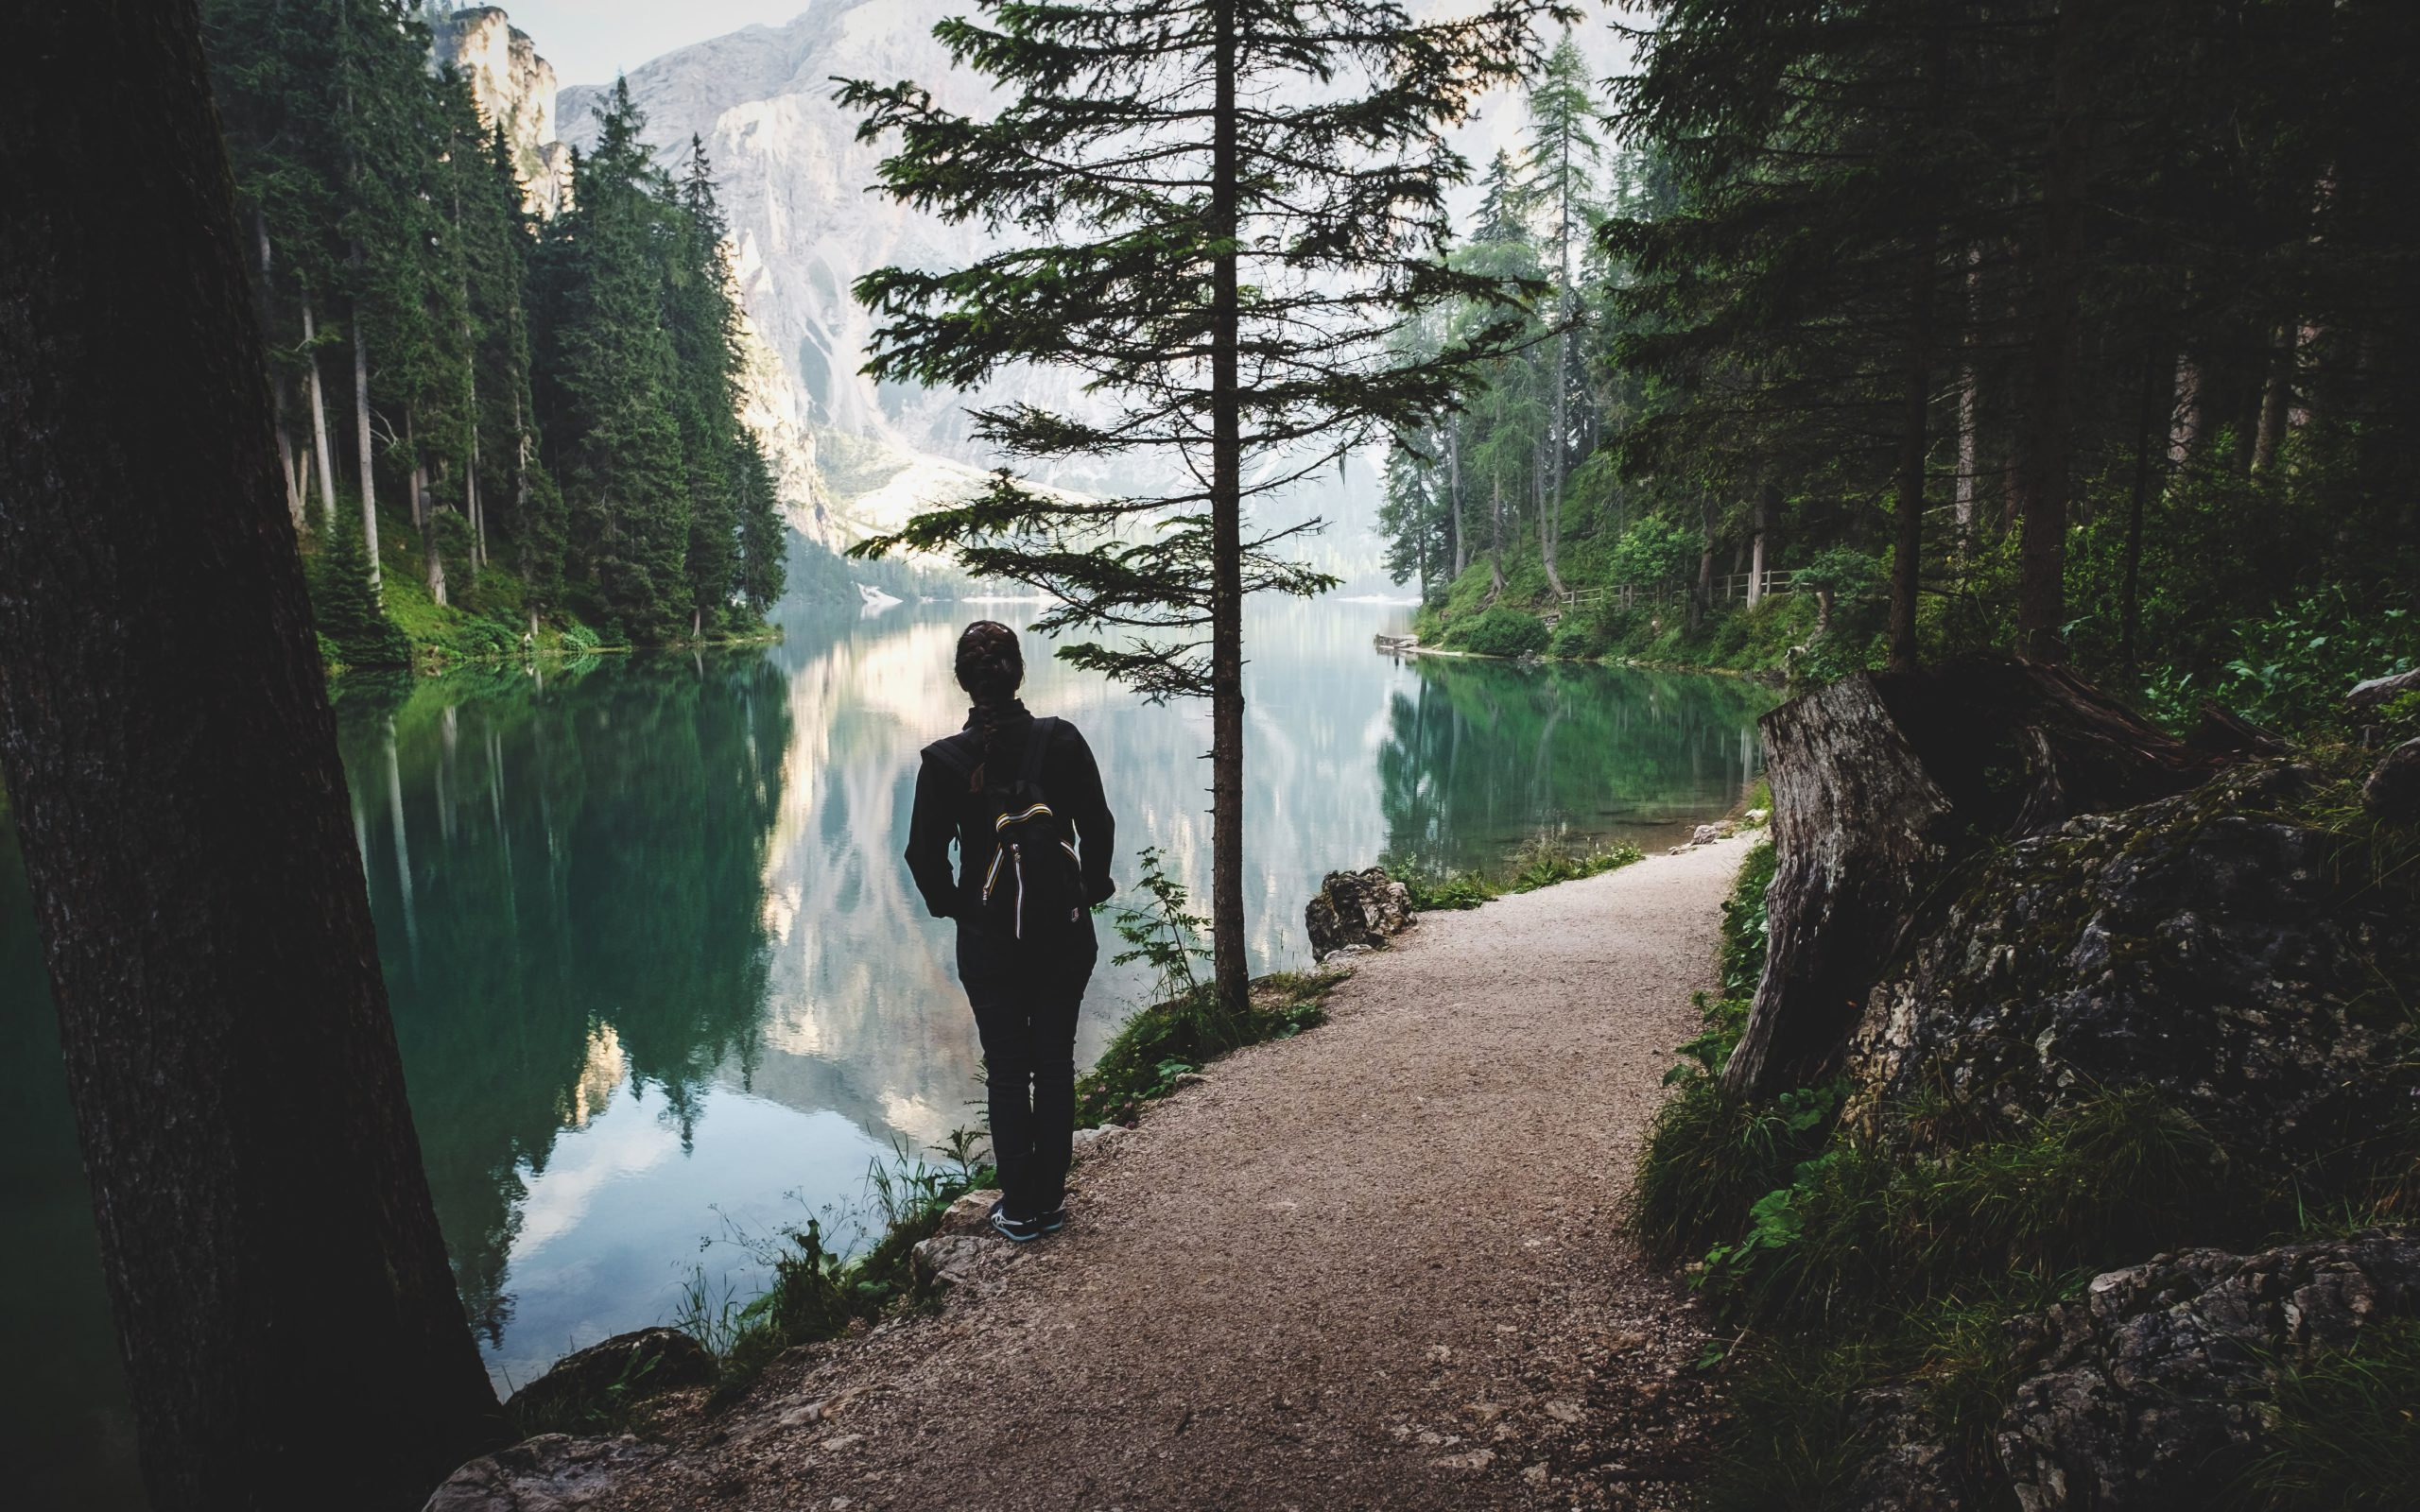 The (Really) Great Outdoors: How spending time in nature improves almost everything